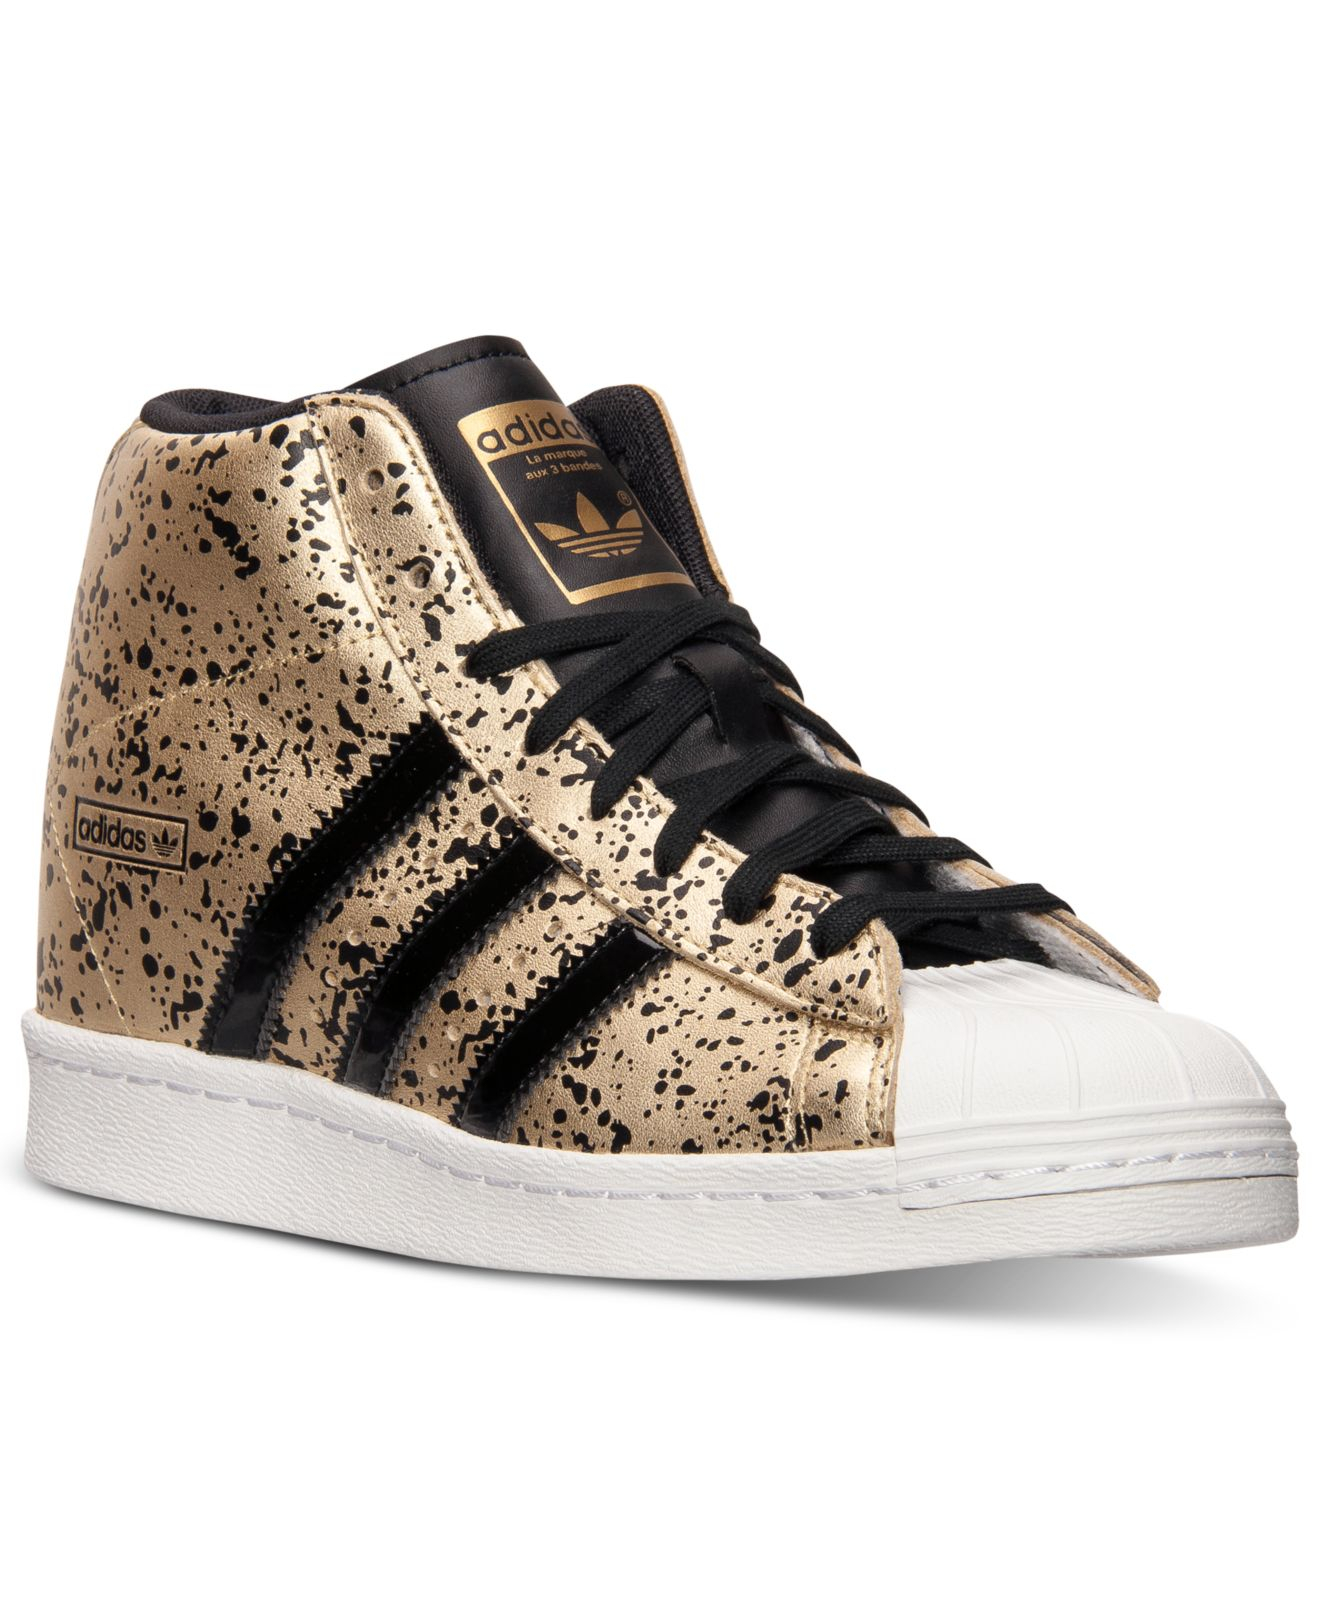 Lyst - adidas Women S Superstar Up Casual Sneakers From Finish Line ... e2c3ebece